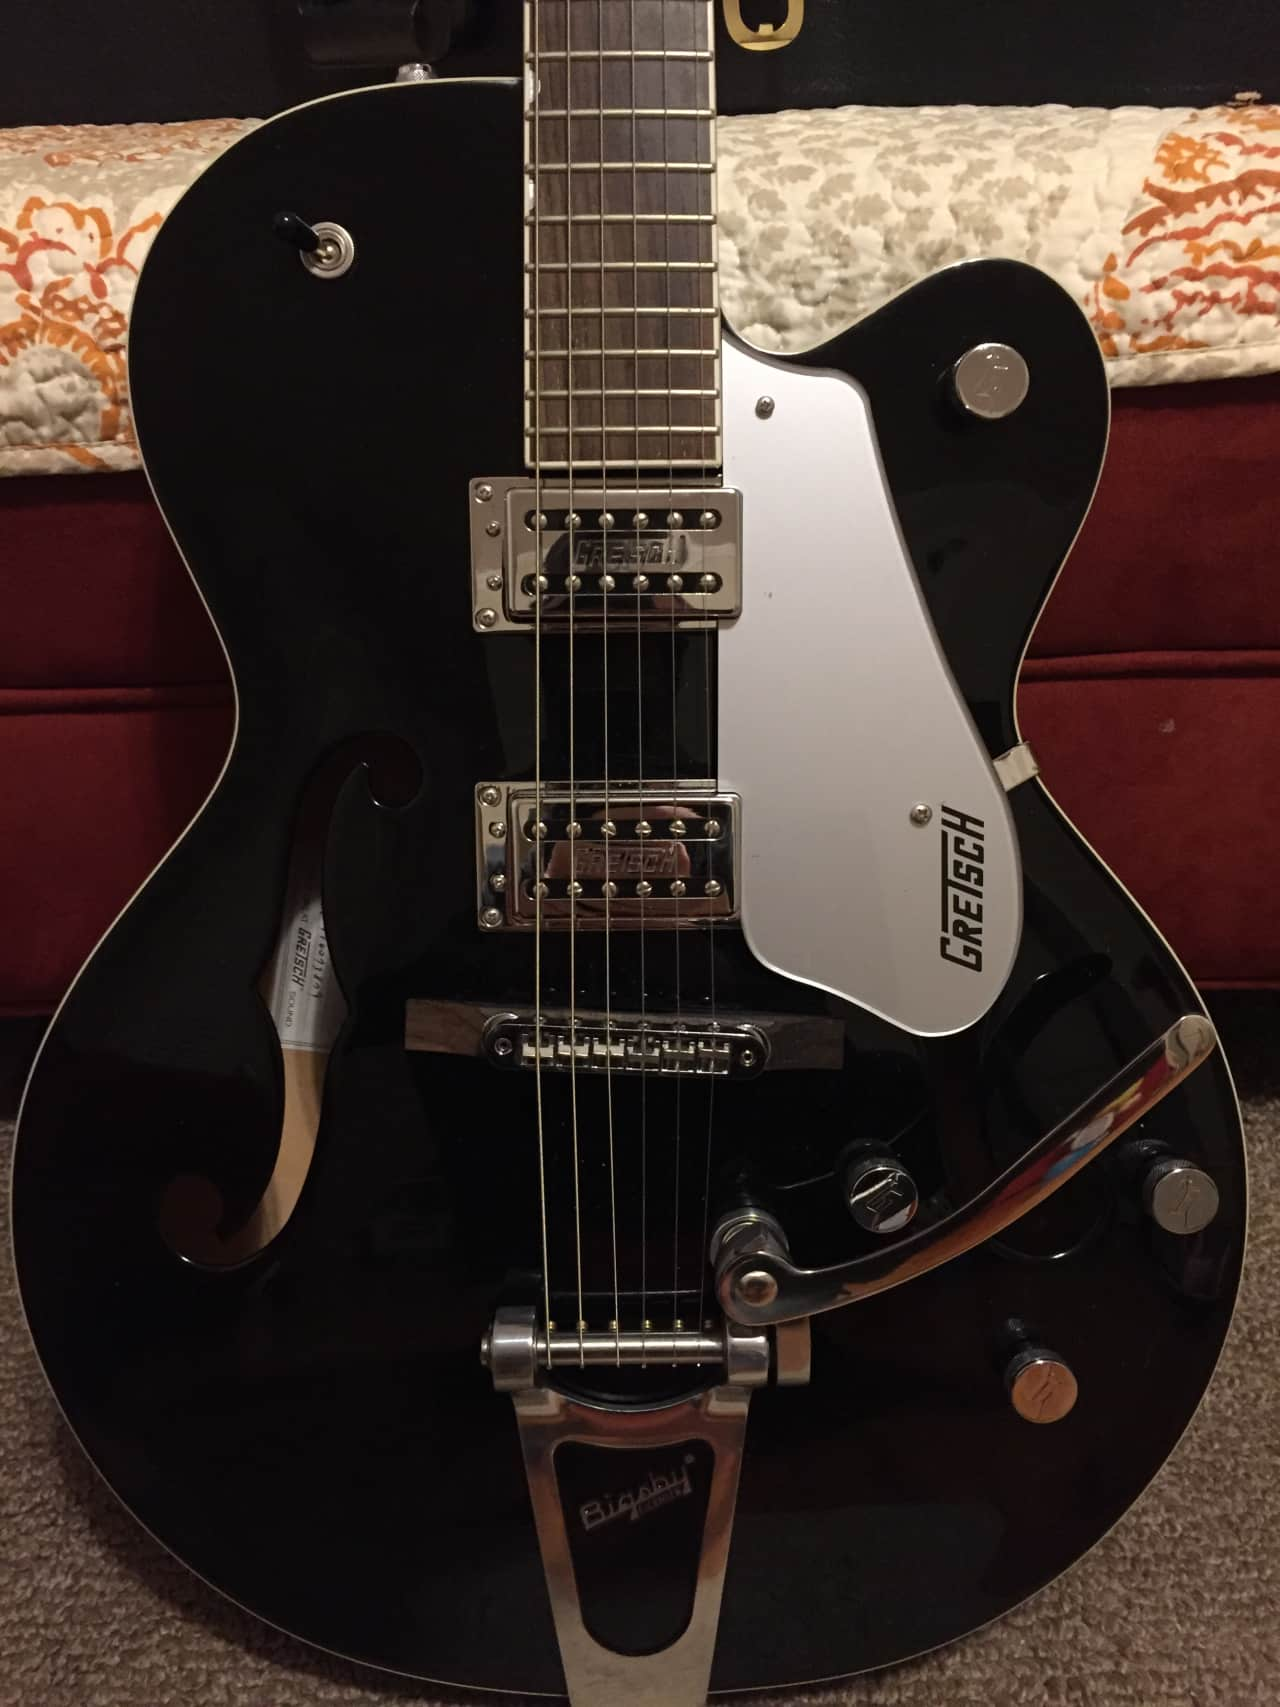 gretsch g5120 electromatic hollow body black includes reverb. Black Bedroom Furniture Sets. Home Design Ideas